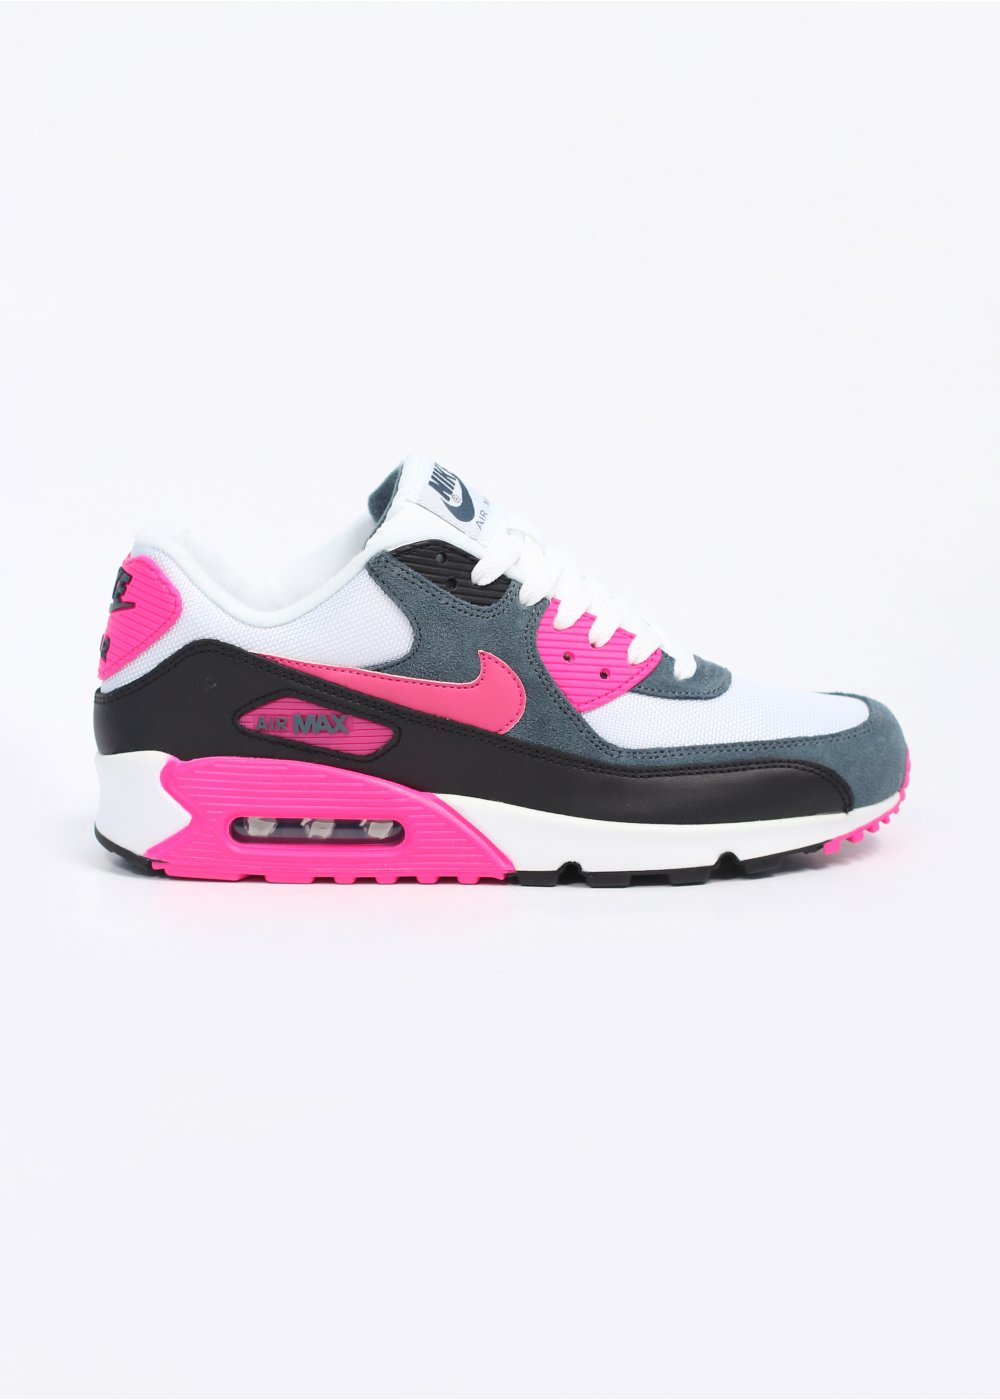 air max 90 black and pink duplemetseccouk